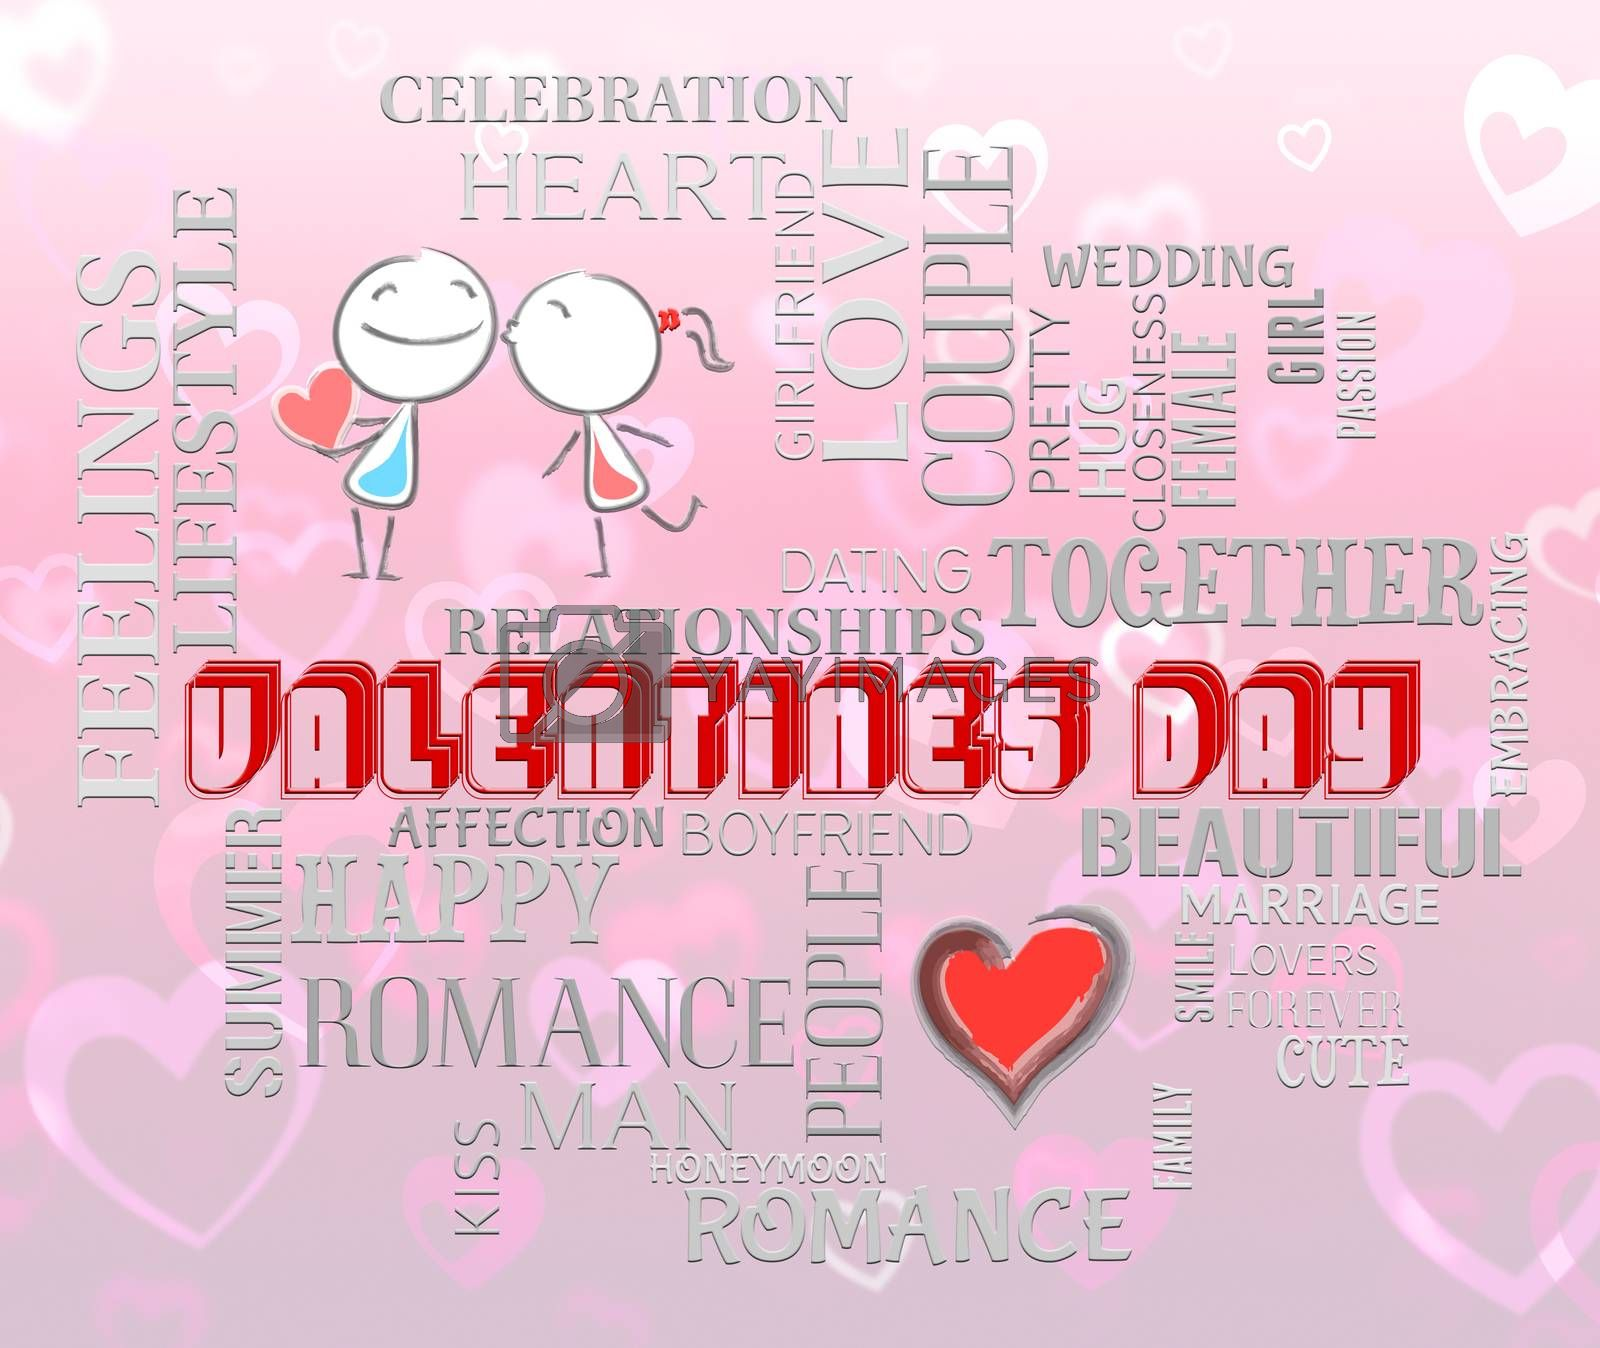 Valentines Day Meaning Romance Love And Affection